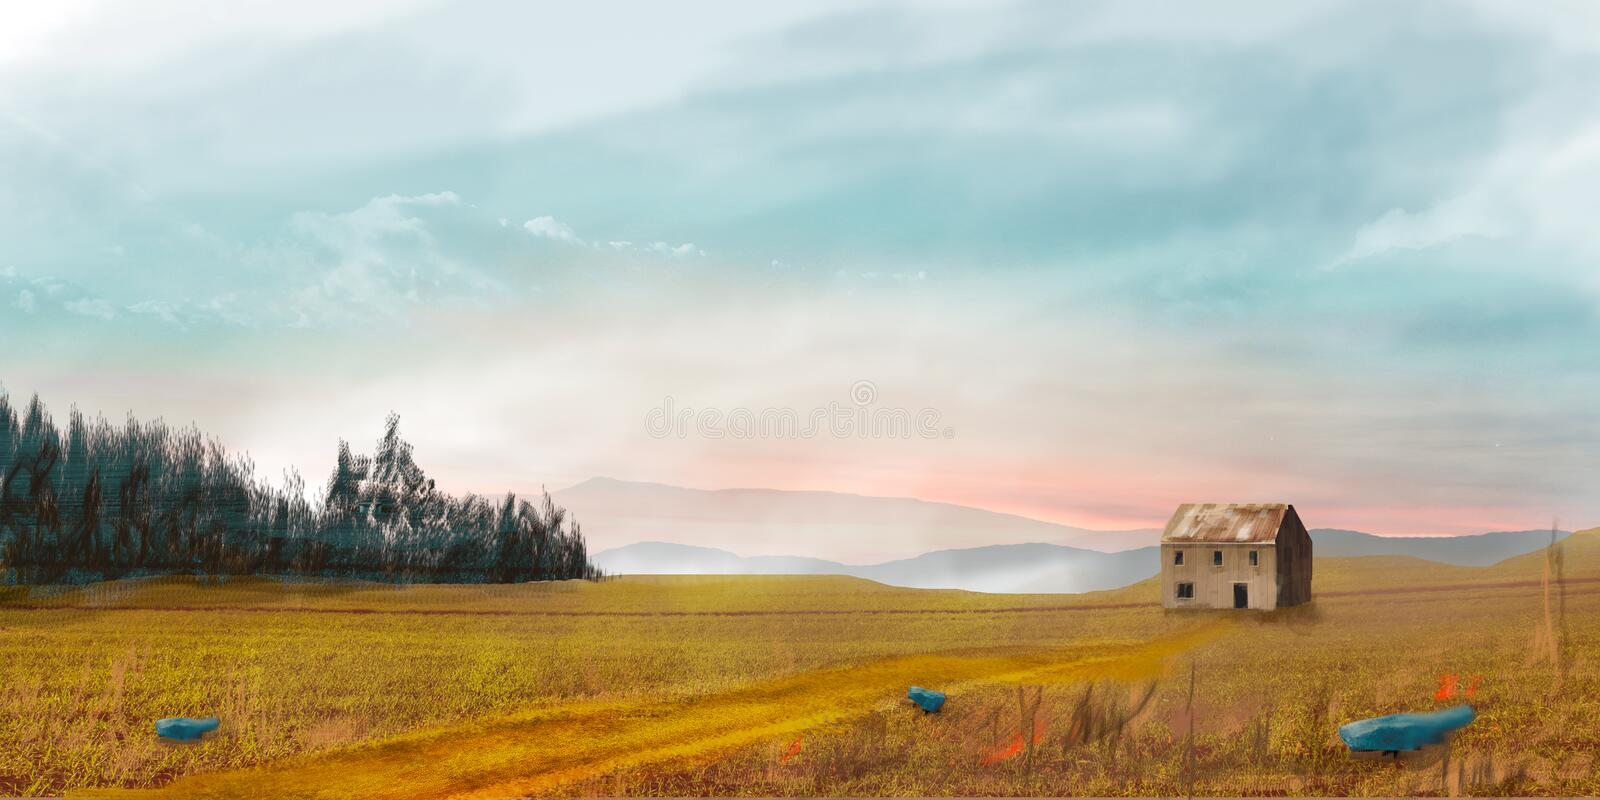 Sci-fi landscape with house, trees and sky, digital painting. Illustration stock photo